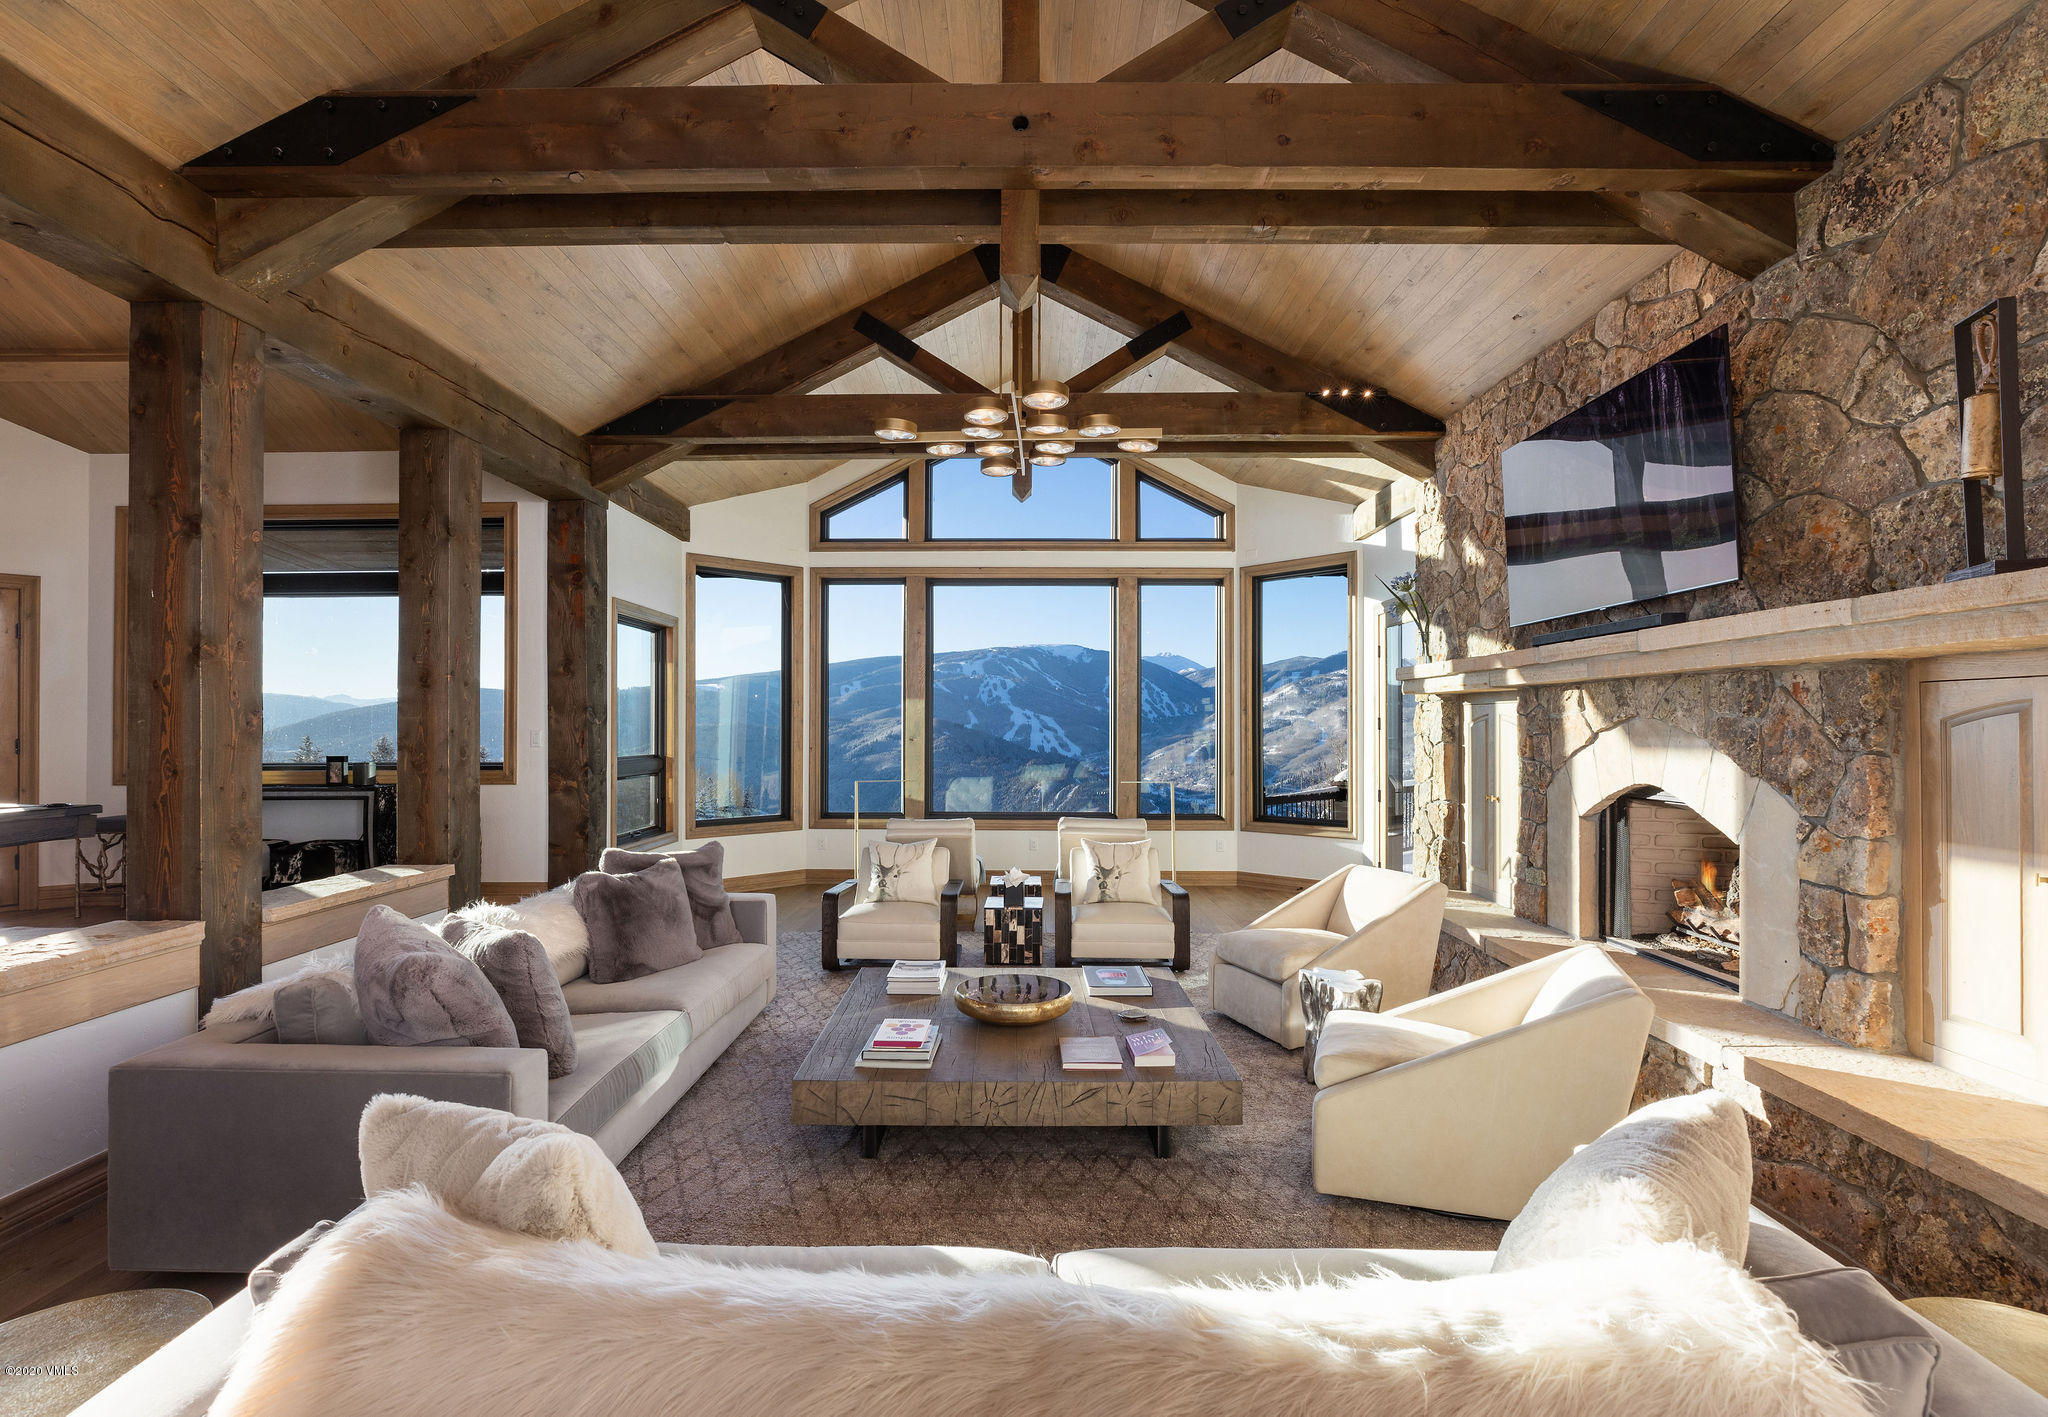 An impeccable home with a VIP front-row seat to one of the best views of the entire Vail Valley. Extensively modernized to capitalize on bringing the great outdoors in and to create vibrant spaces filled with light and perfectly appointed furnishings. This home is conducive to single-level living with the addition of four guest suites and plentiful rooms to gather and celebrate. Extensive decks and patios grant access to endless vistas for your viewing pleasure. A 3-car garage provides plenty of space for all the toys and more. Situated pristinely on a 4.5 acre parcel, this residence will steal your heart and entice your excitement for the Mountain Lifestyle.  For buyers seeking exclusivity and privacy with commanding views, Mountain Star is a low-density community set across 1,300+ acres of rolling meadows, sage hills and forested glades. Open space parcels, which comprise the vast majority of Mountain Star's impressive acreage, are prominent through the community. Privacy and serenity are paramount, with cross-country trails providing residents access to its magnificent natural surroundings for exploration. Mountain Star is a community in the Vail Valley unlike any other. Some of the most architecturally impressive, innovative, and quality-built estate homes are located in Mountain Star, where residents, through their design, have the freedom to express themselves. A full-time, on-site caretaker carefully watches over the community, tending to the owners with great care and attention. Neighborhood gatherings take place at ''Ranch Central'', which serves as a cozy focal point for residents. Centrally located just minutes from Avon, Beaver Creek and Vail, Mountain Star is one of the valley's best-kept secrets. It is a community where understated opulence sits tucked into the trees and atop the hillside, where views of Beaver Creek and the Sawatch Mountain Range erase the hustle and bustle of the valley below.